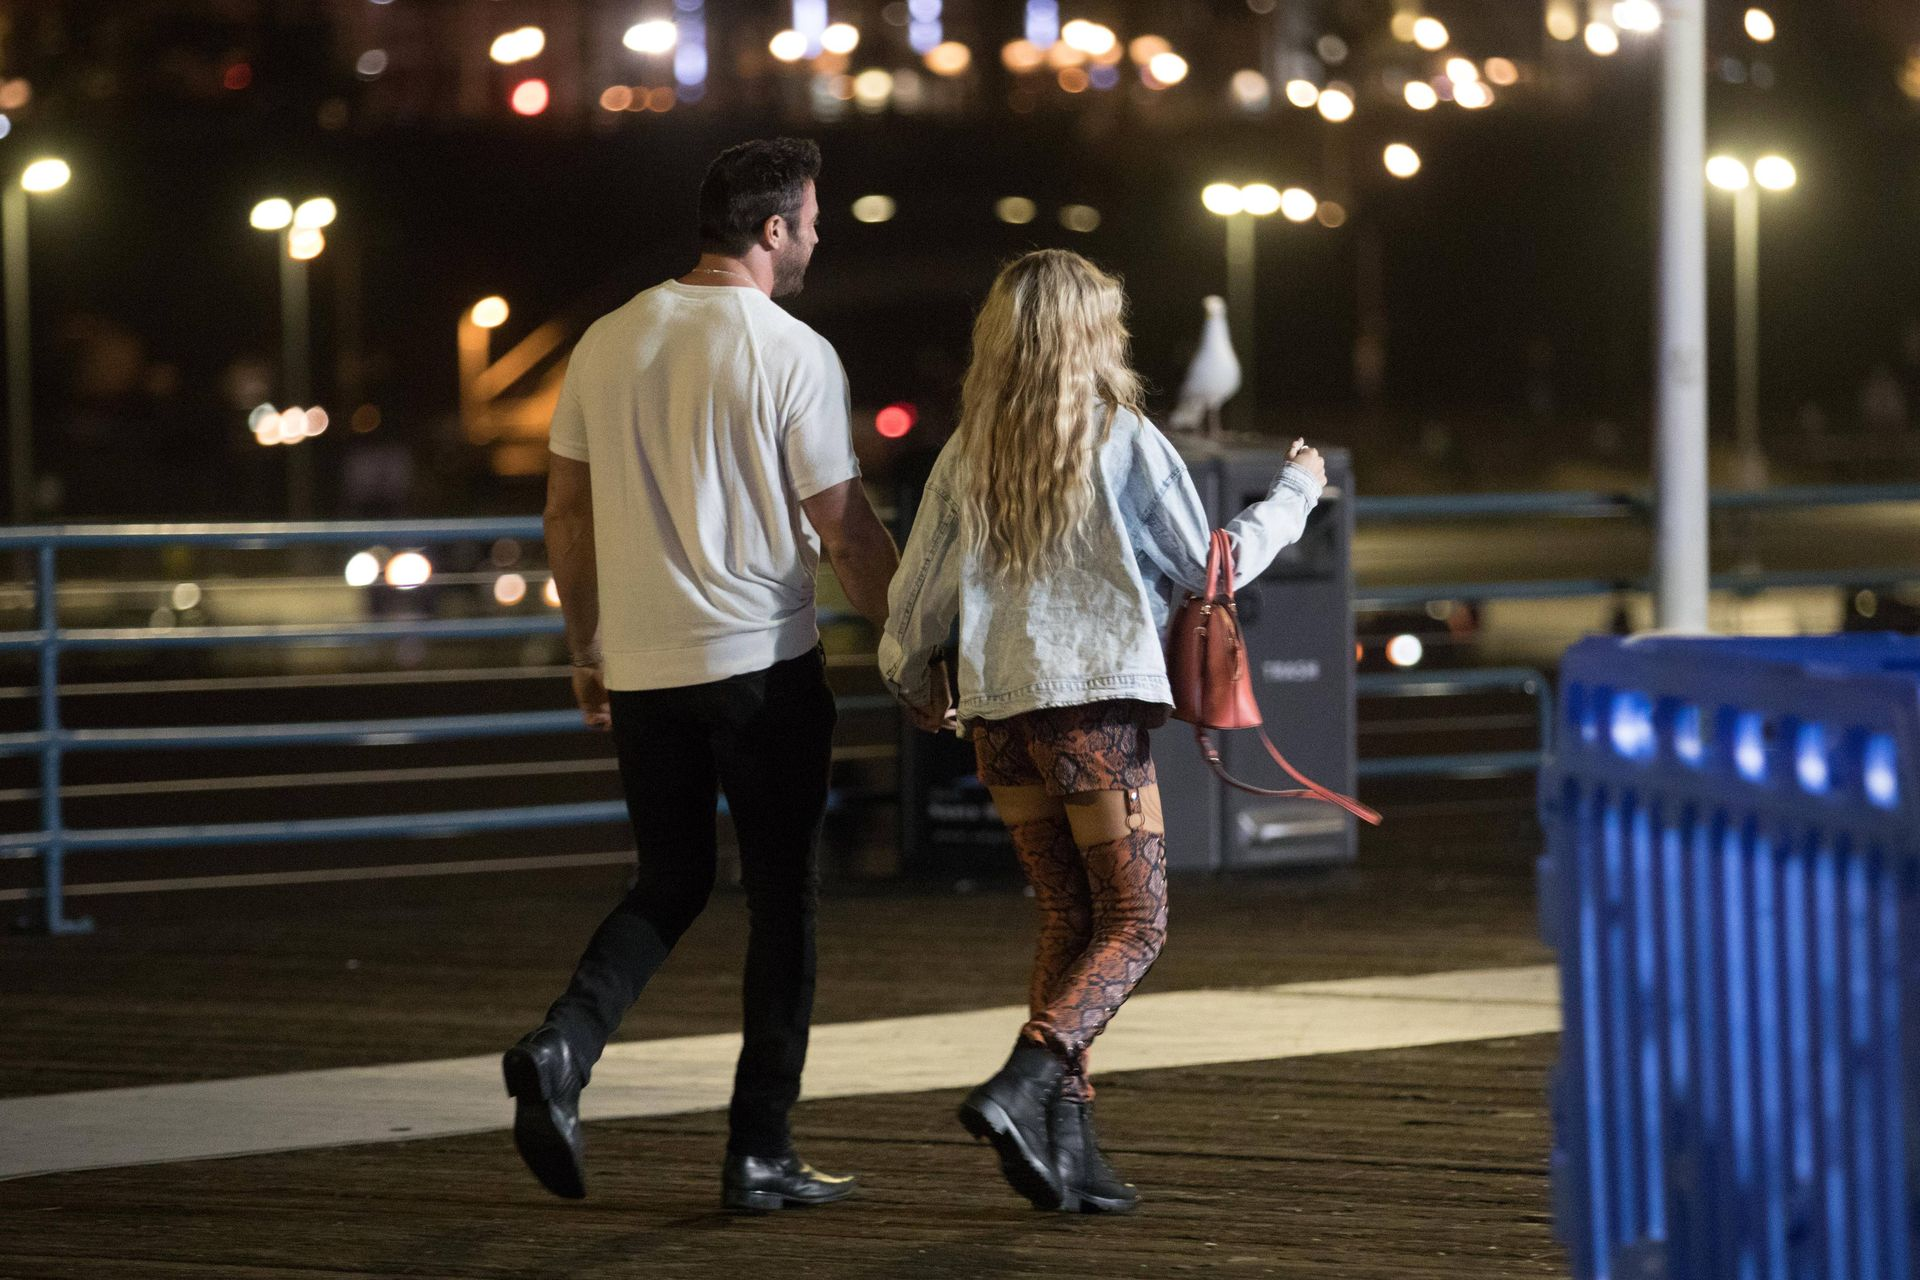 Chad Johnson & Annalise Mishler Are Seen On A Low Key Date At The Santa Monica Pier 0021